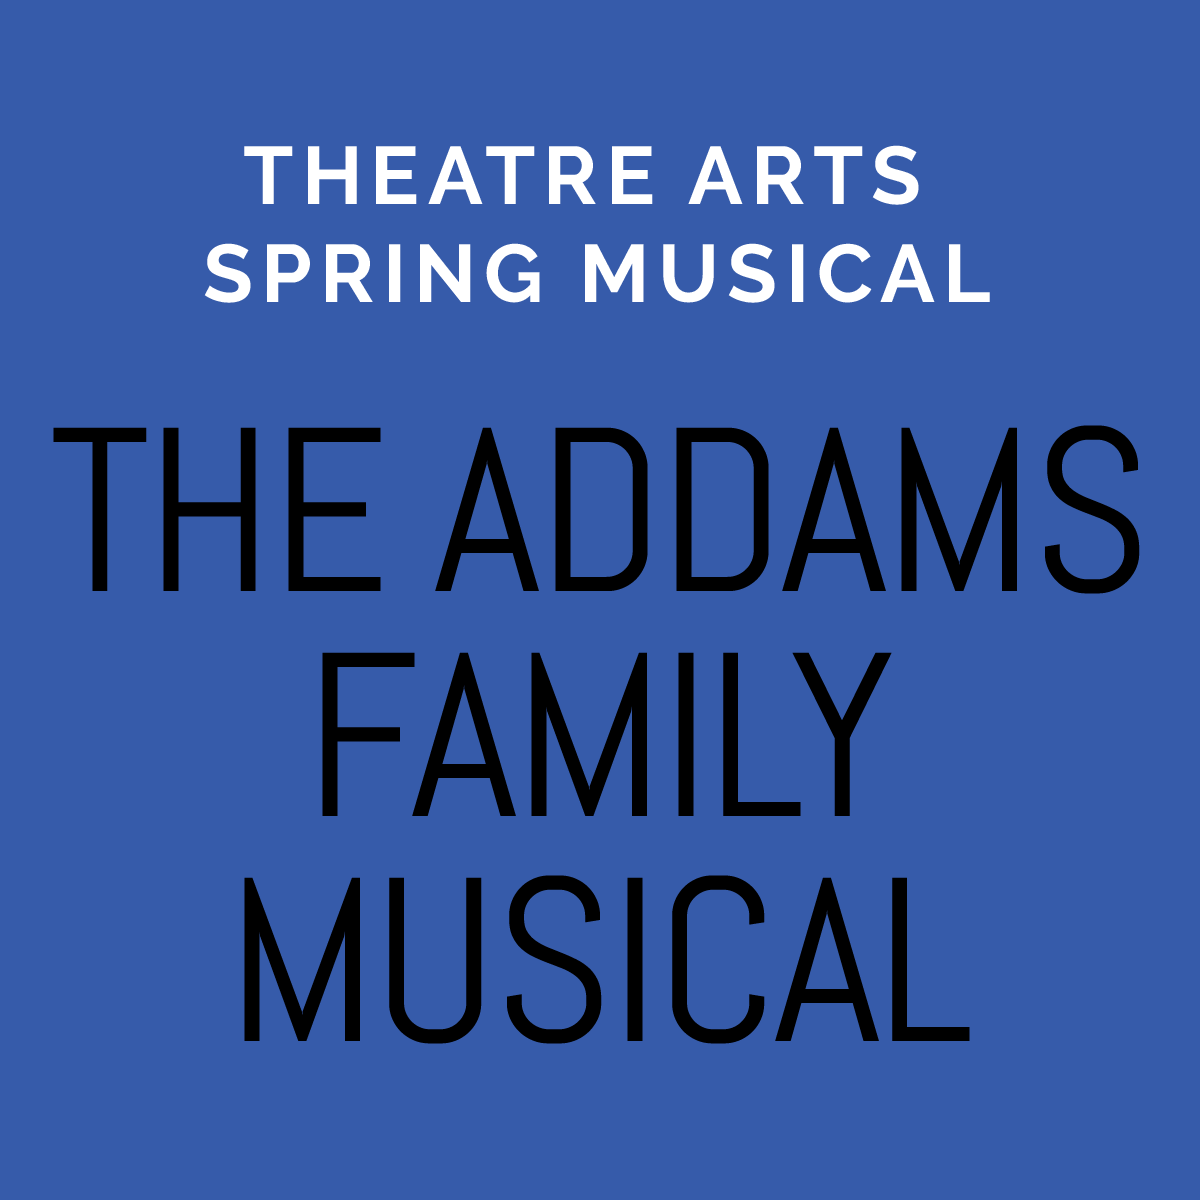 """Theatre Arts Spring Musical """" The Addams Family Musical"""""""